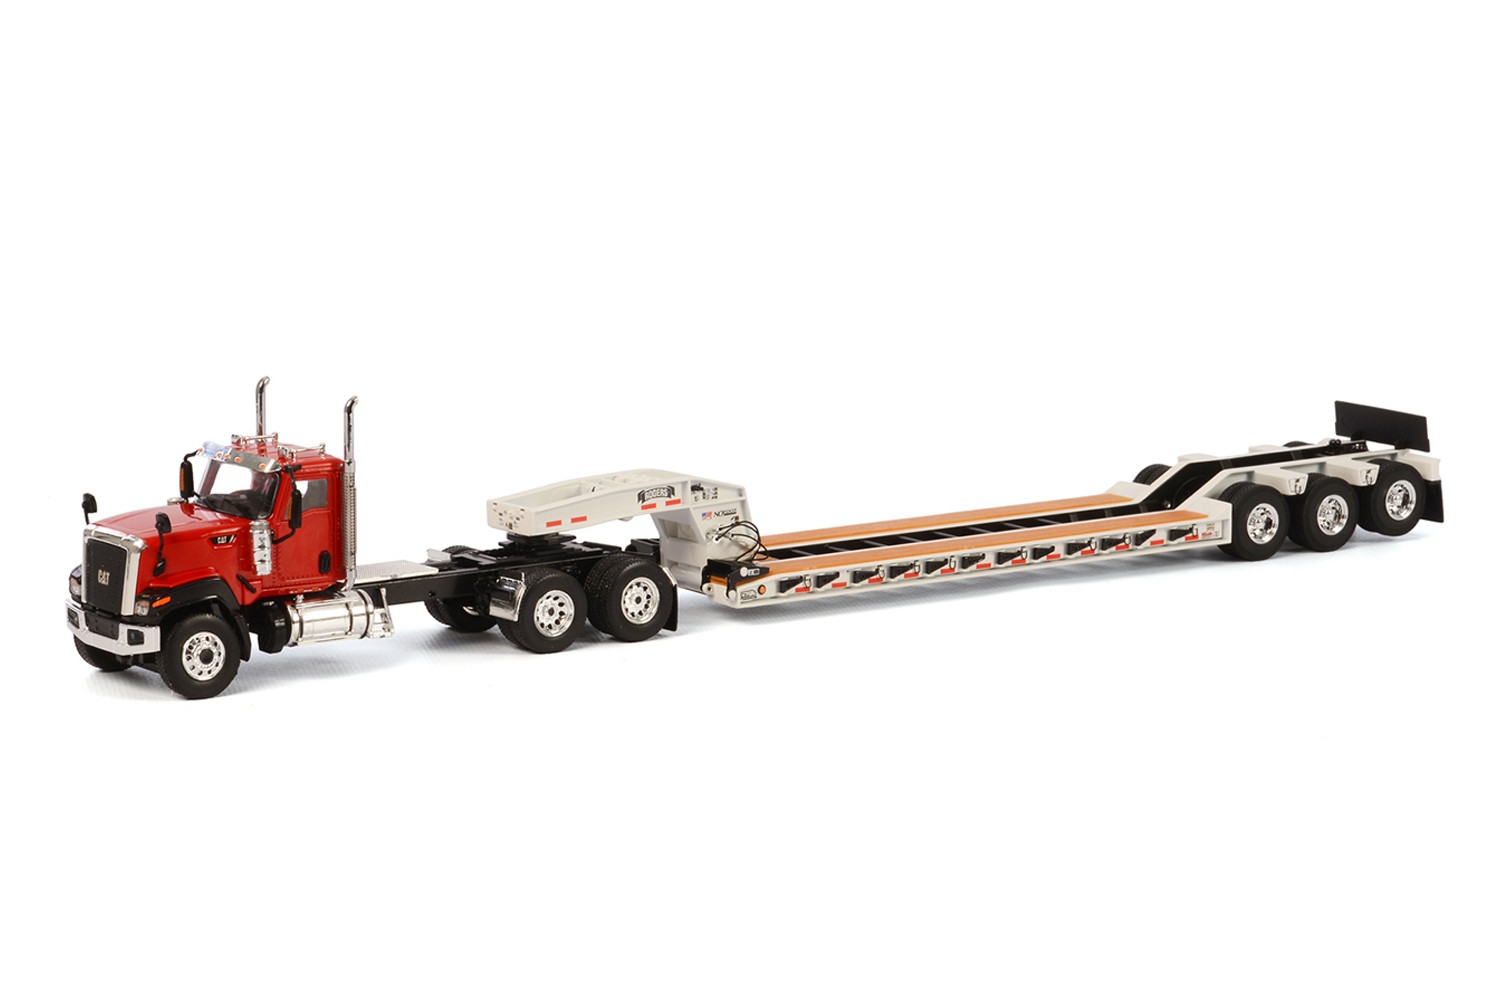 Caterpillar CT680 with 3 axle lowboy-Red/White